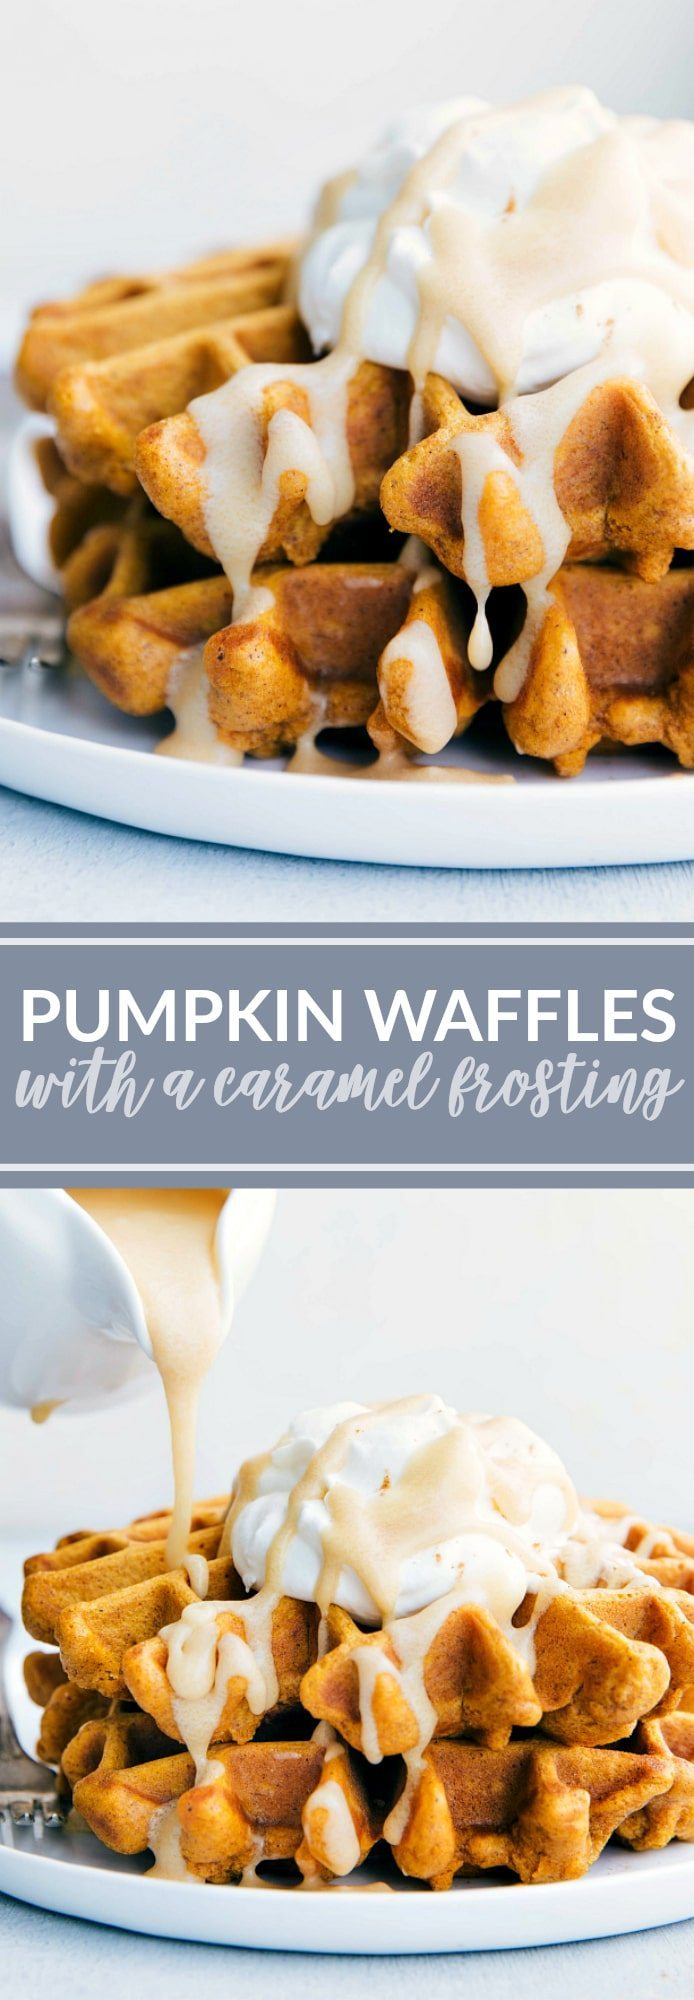 The ultimate BEST EVER PUMPKIN WAFFLES with a 3-ingredient caramel frosting! via chelseasmessyapron.com